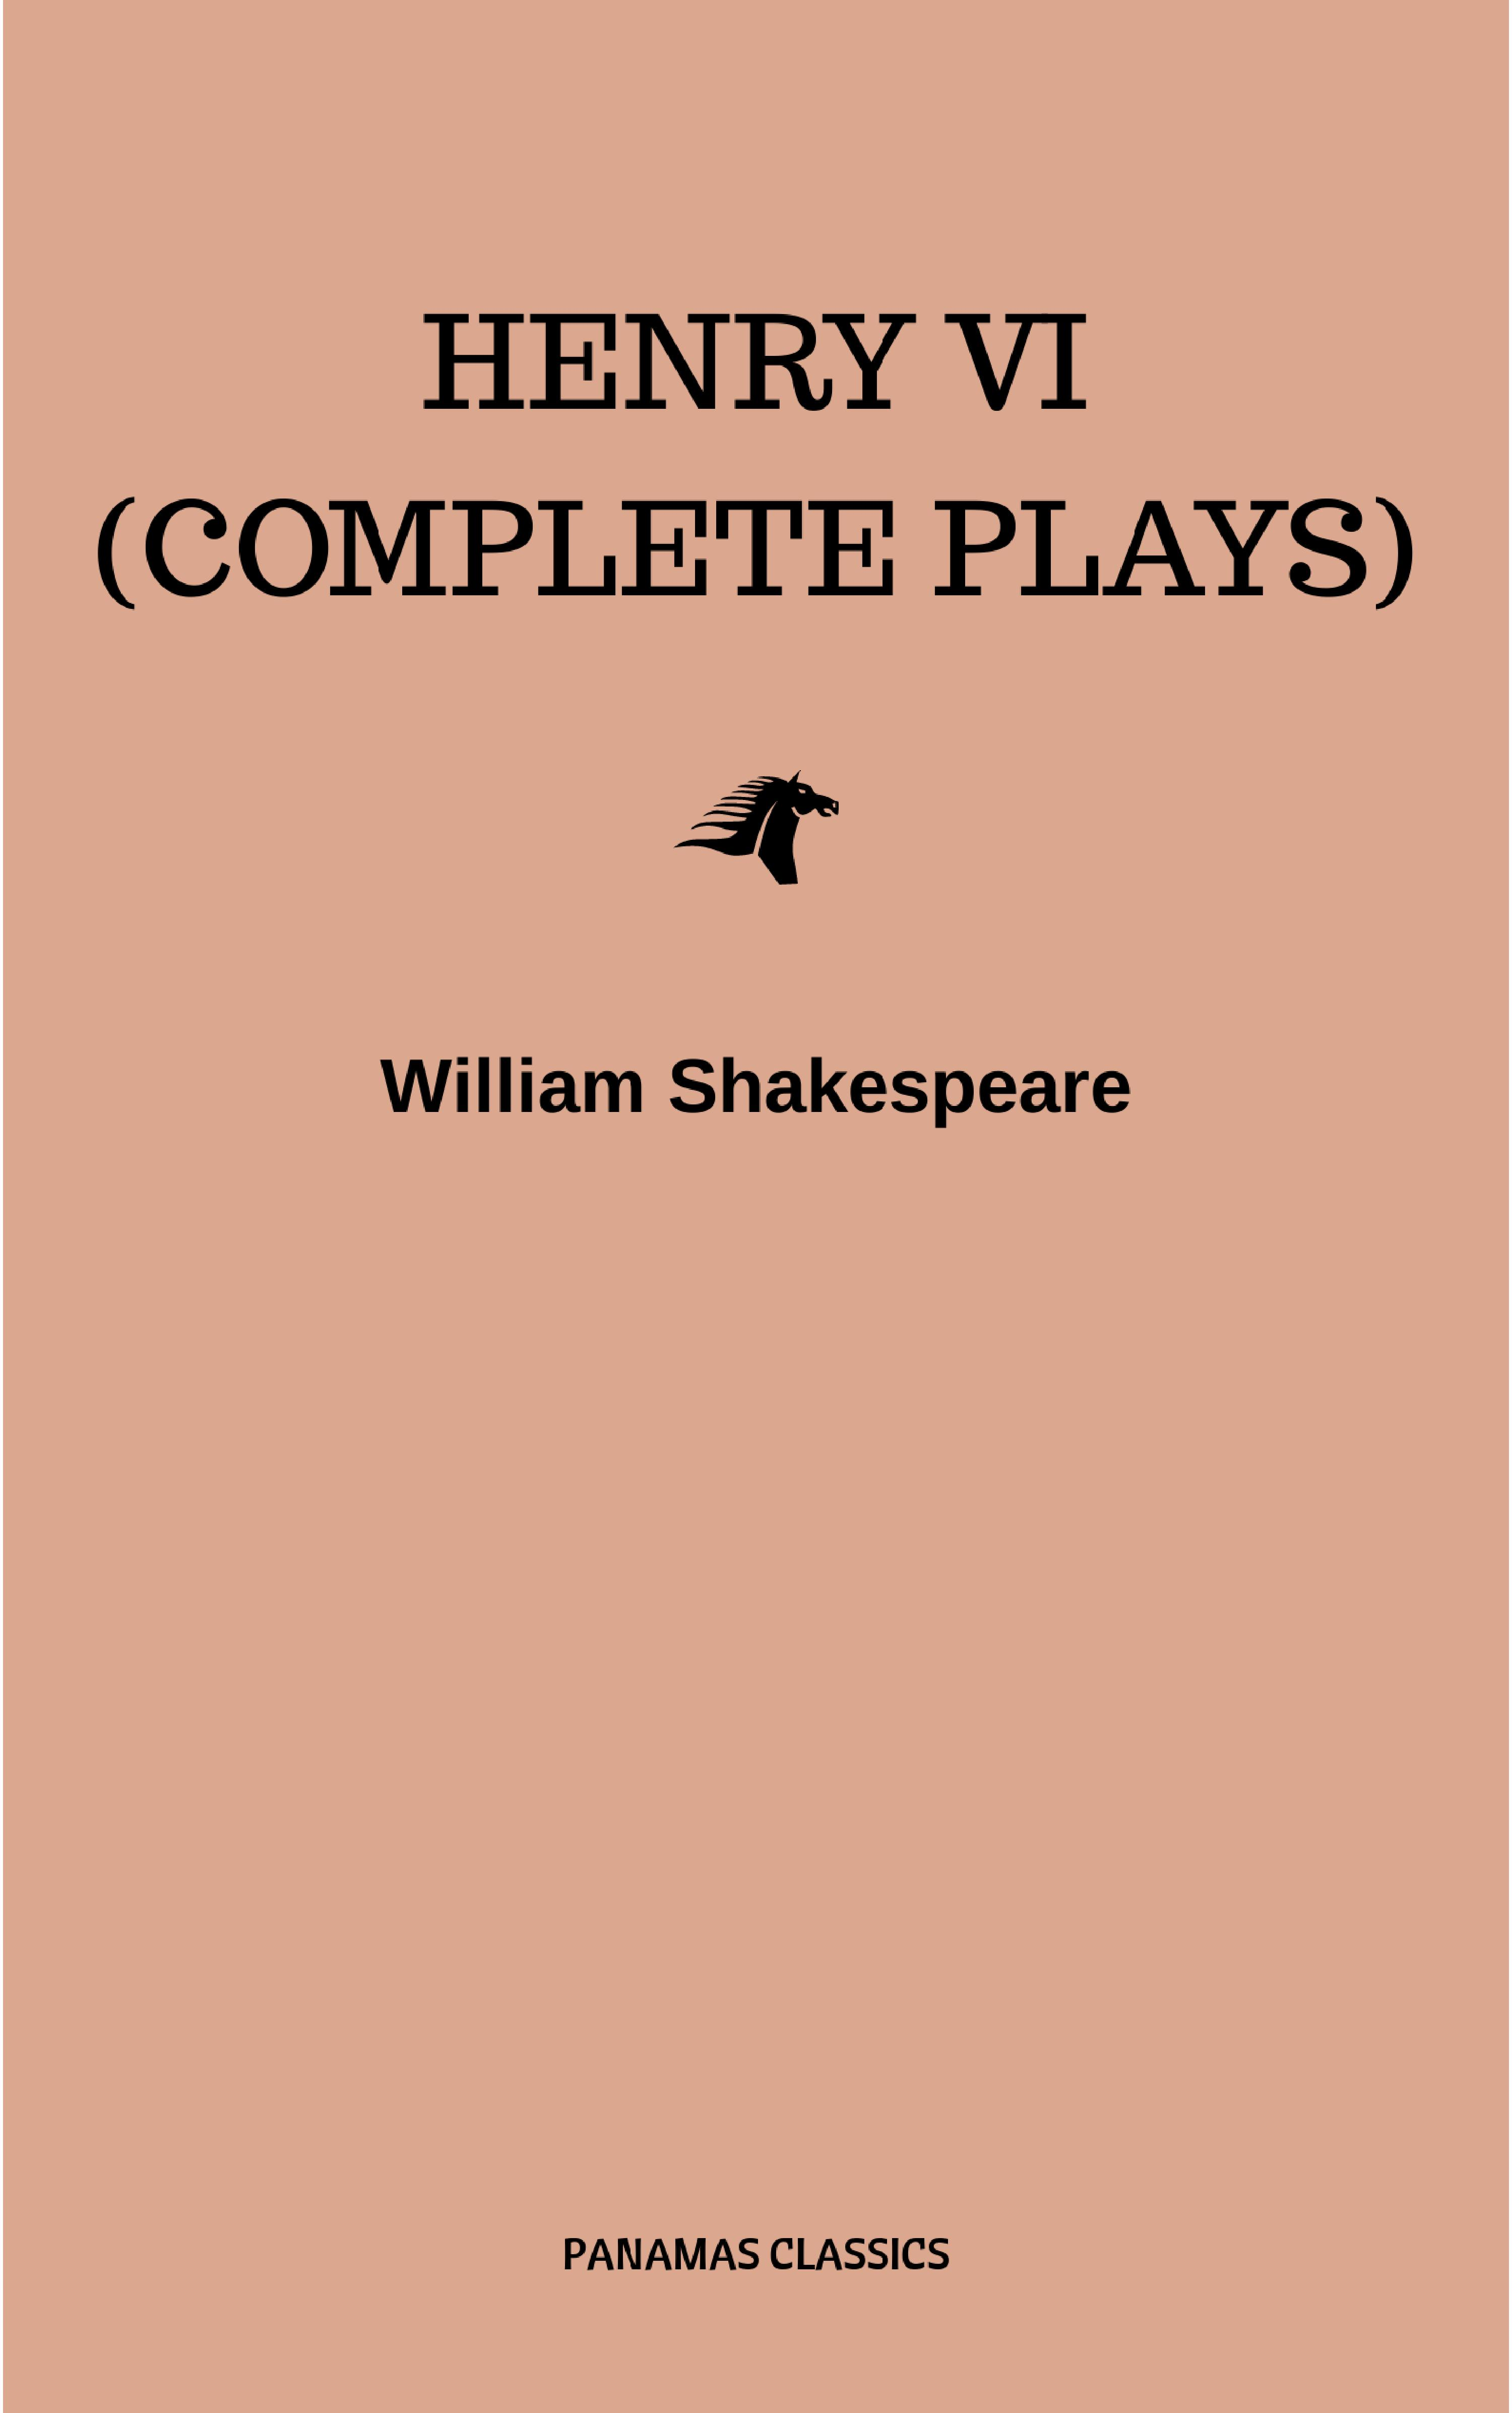 henry vi complete plays